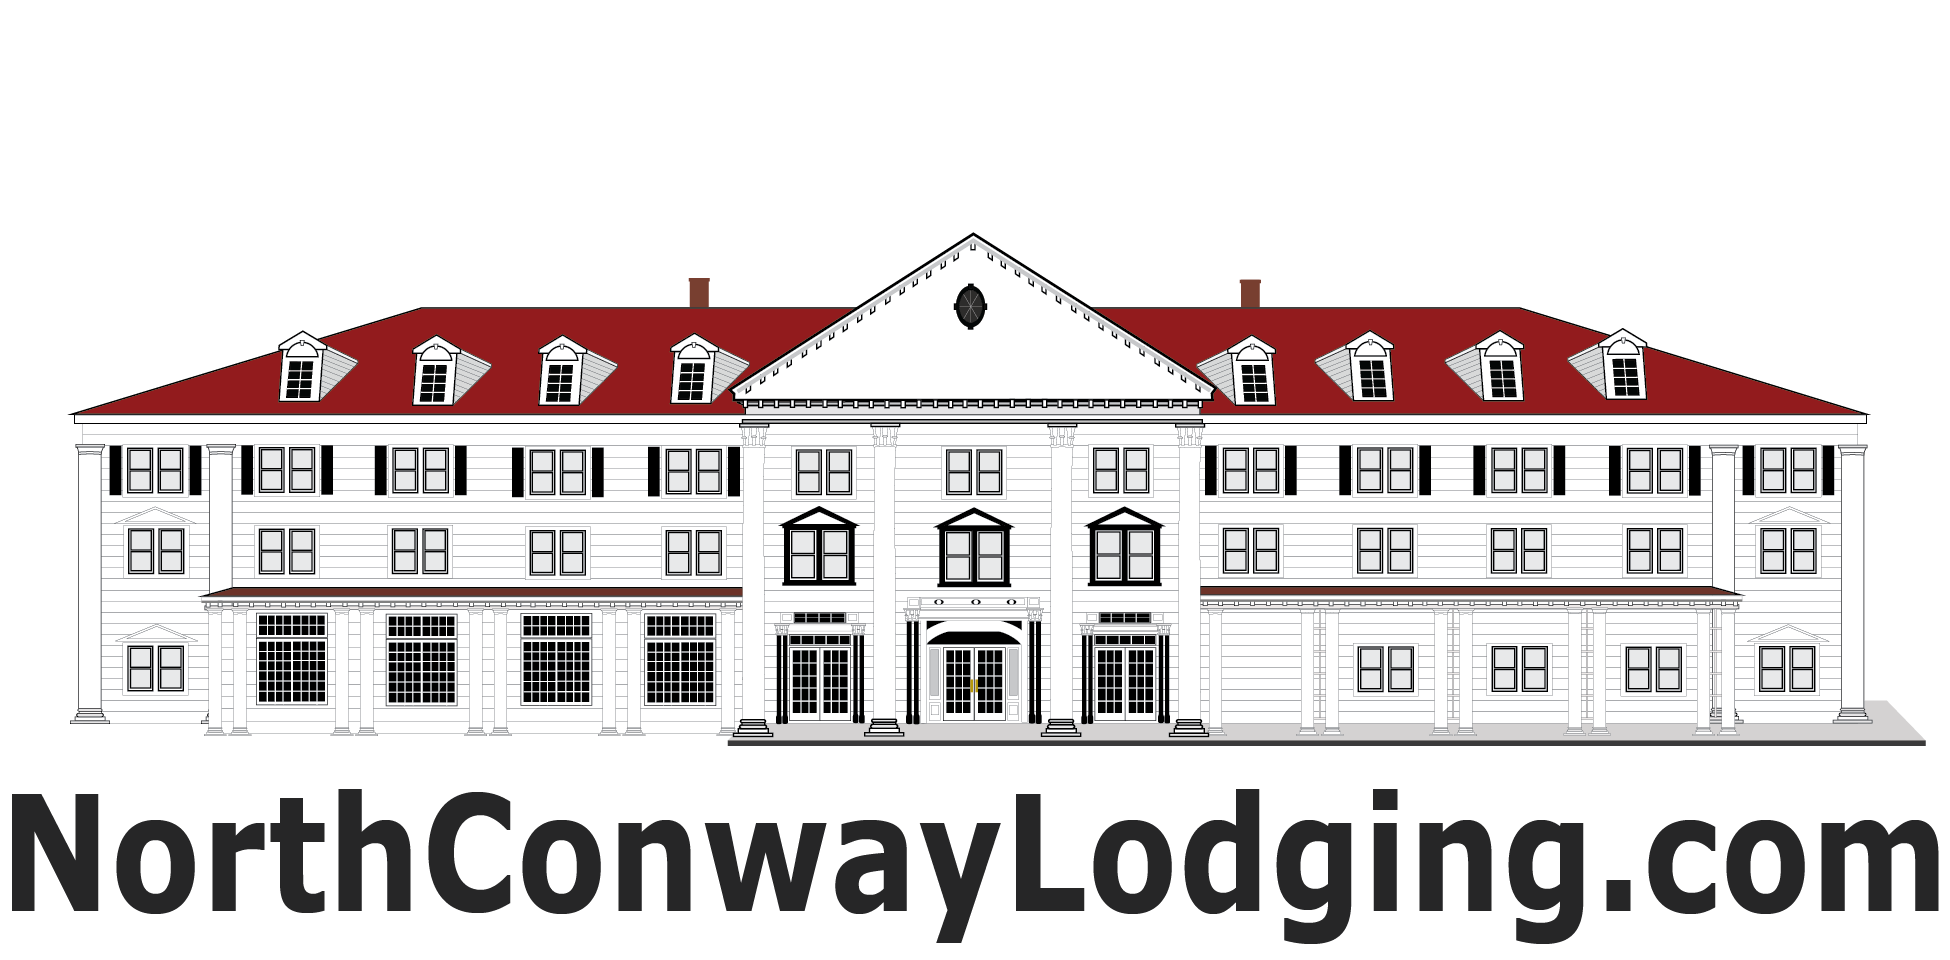 North Conway Lodging Logo